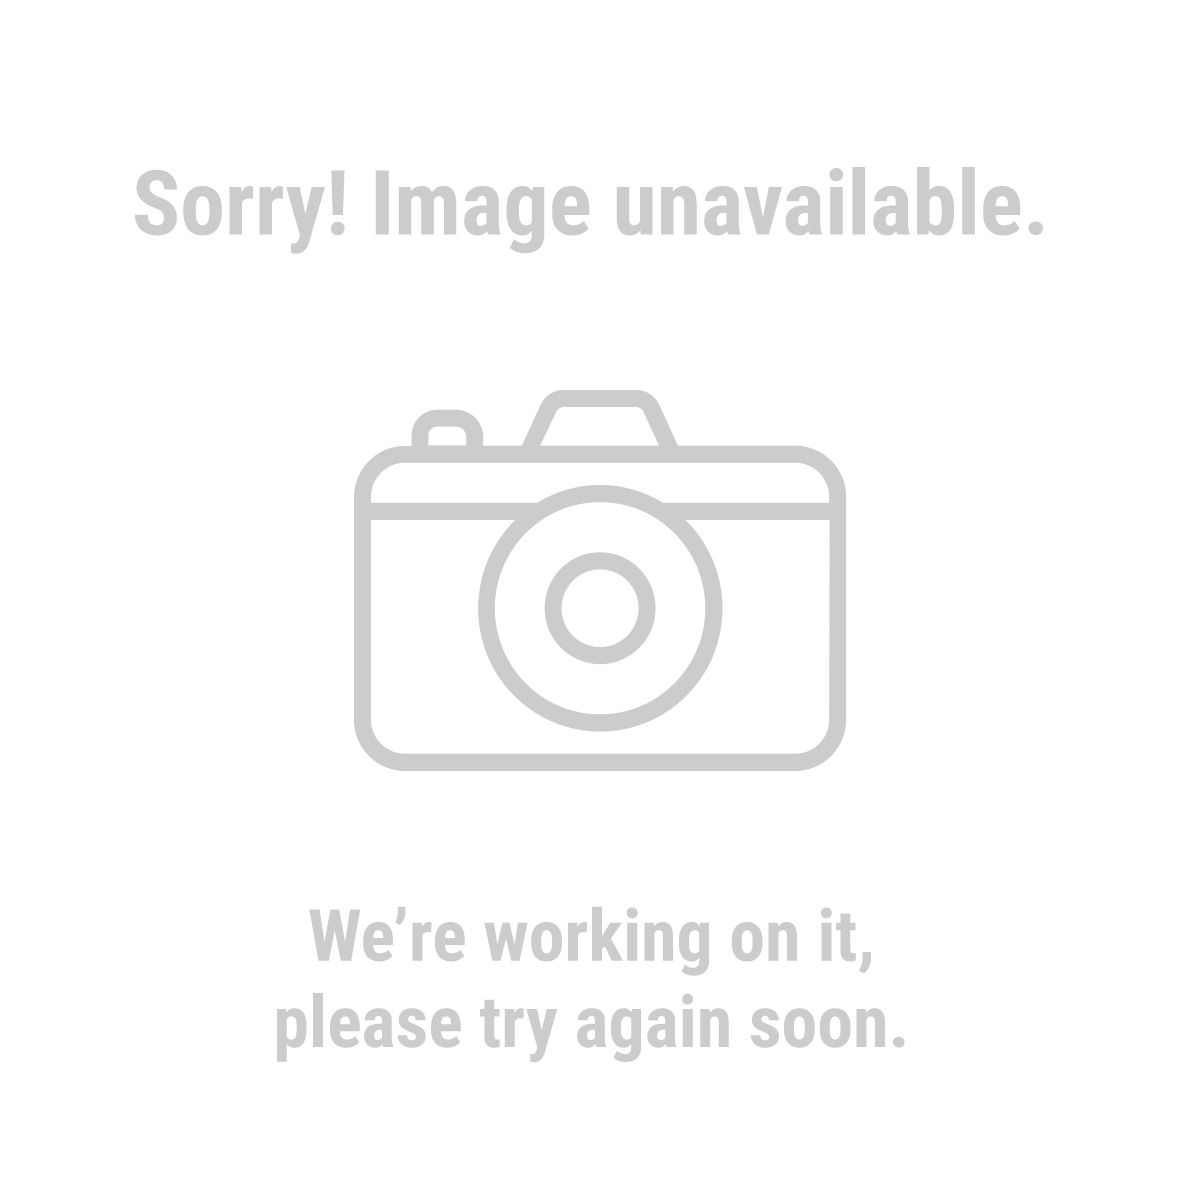 HFT 61837 Mechanic's Shop Towels 50 Pk